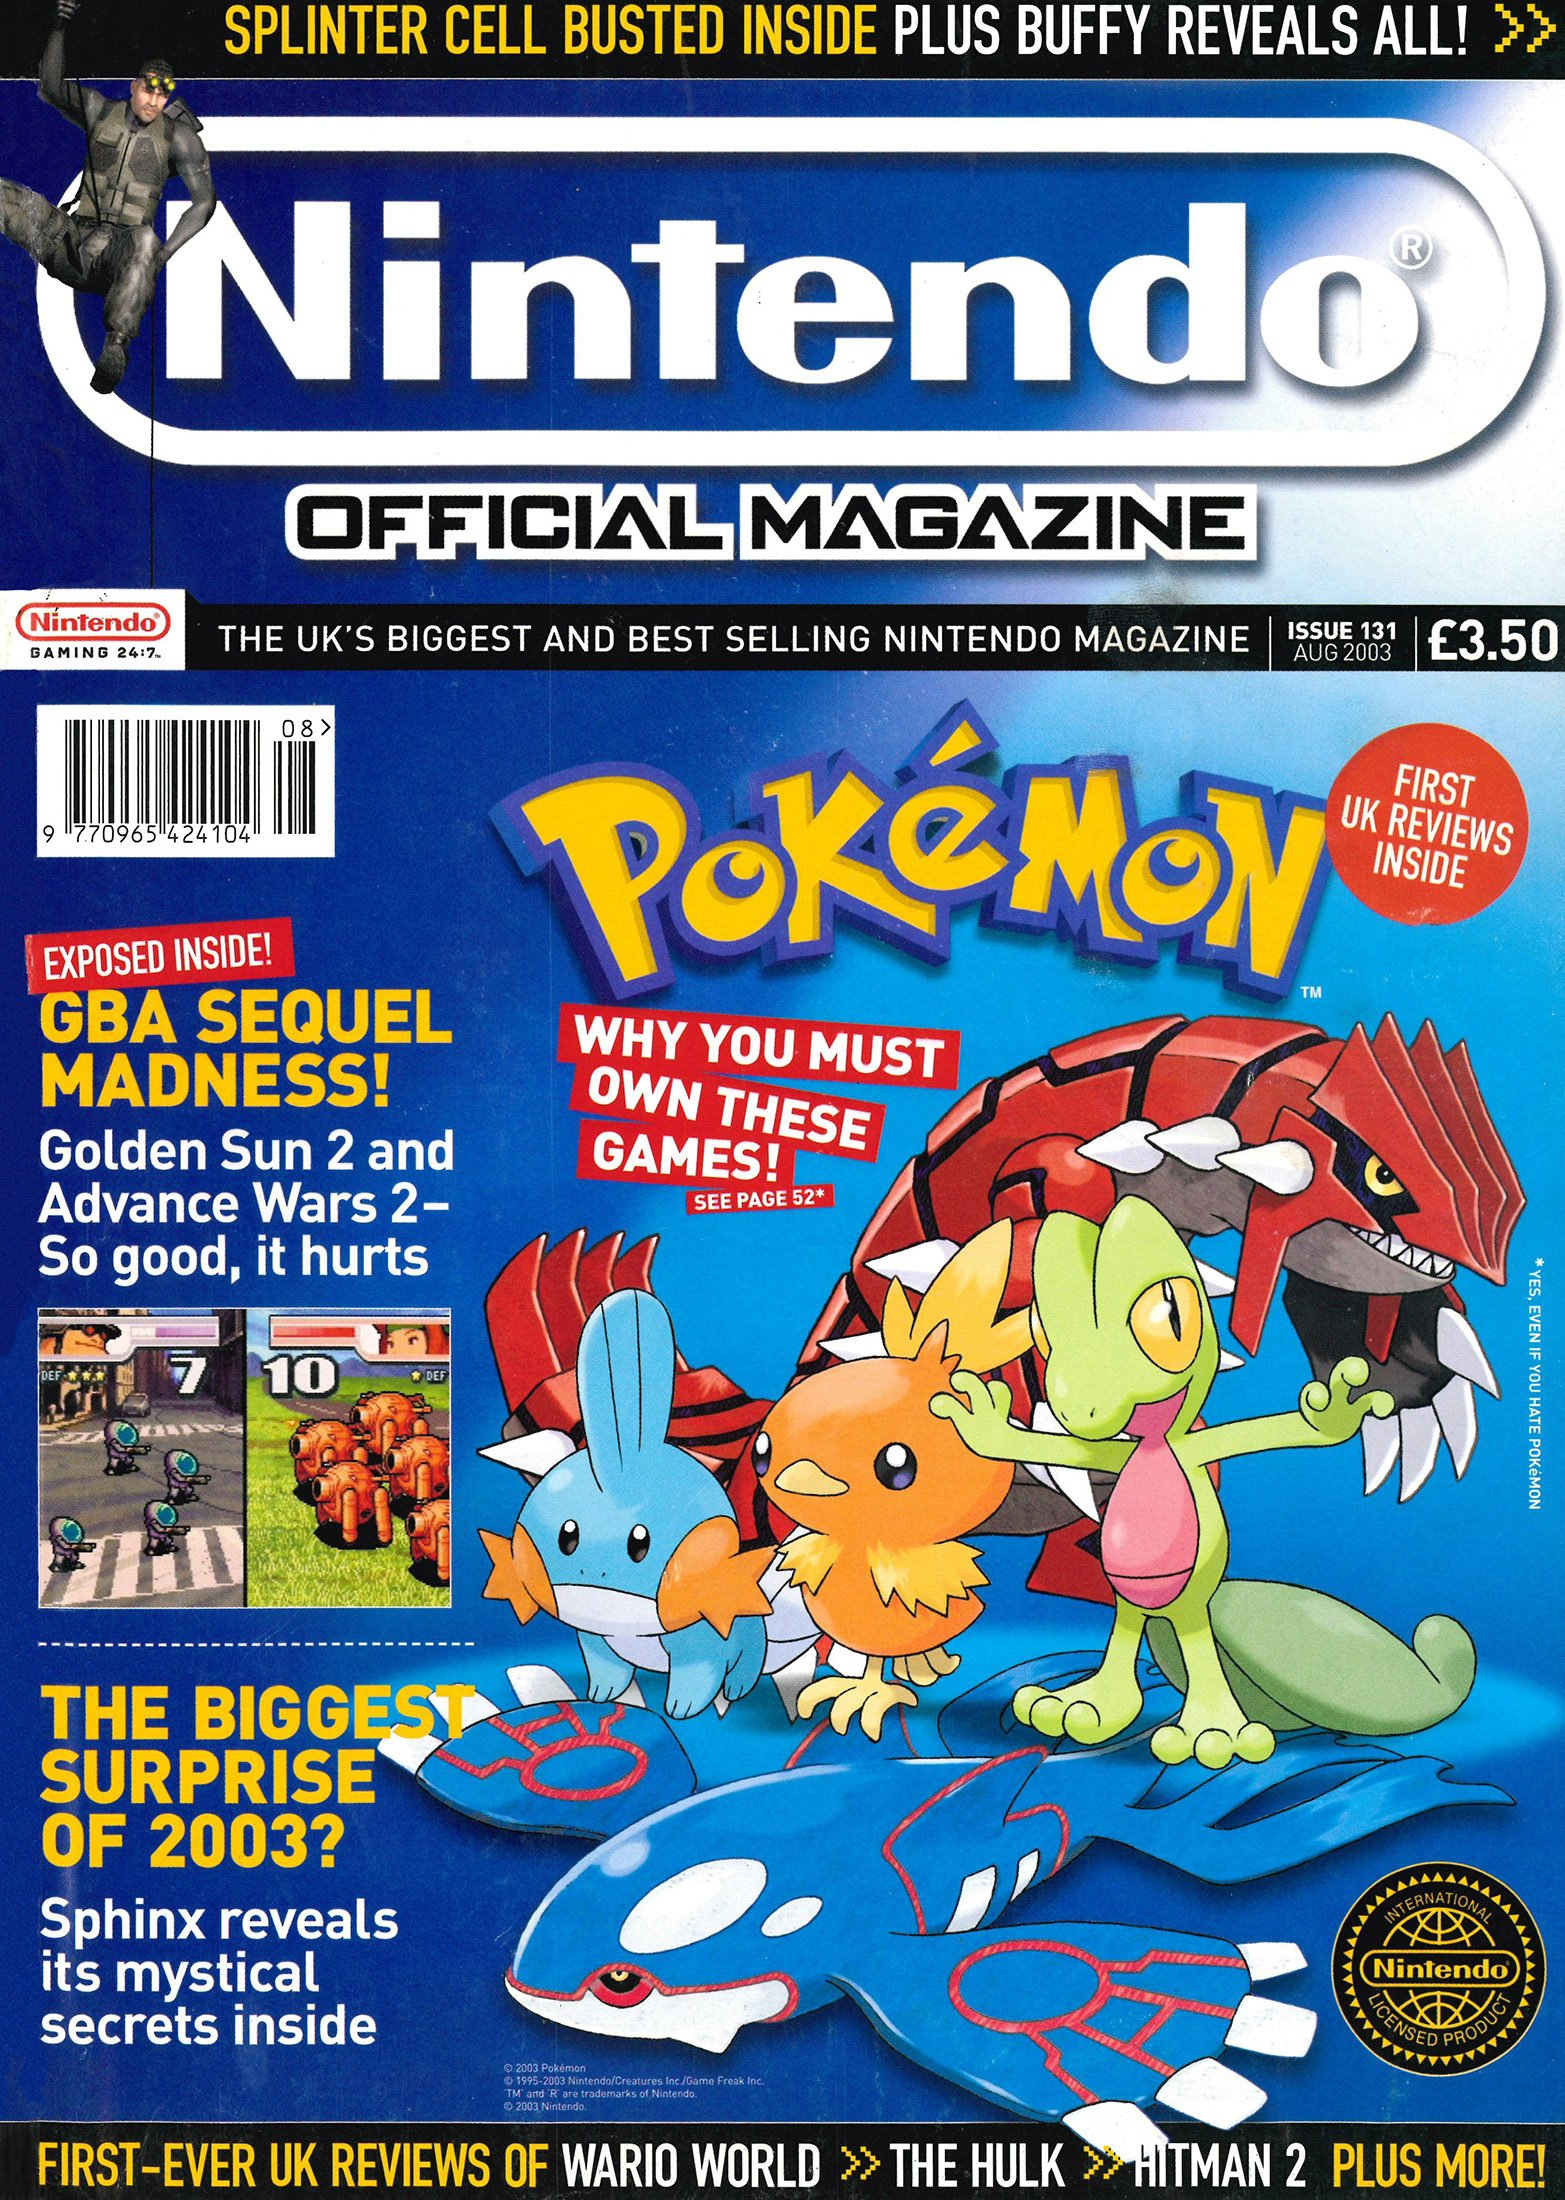 Nintendo Official Magazine 131 (August 2003)